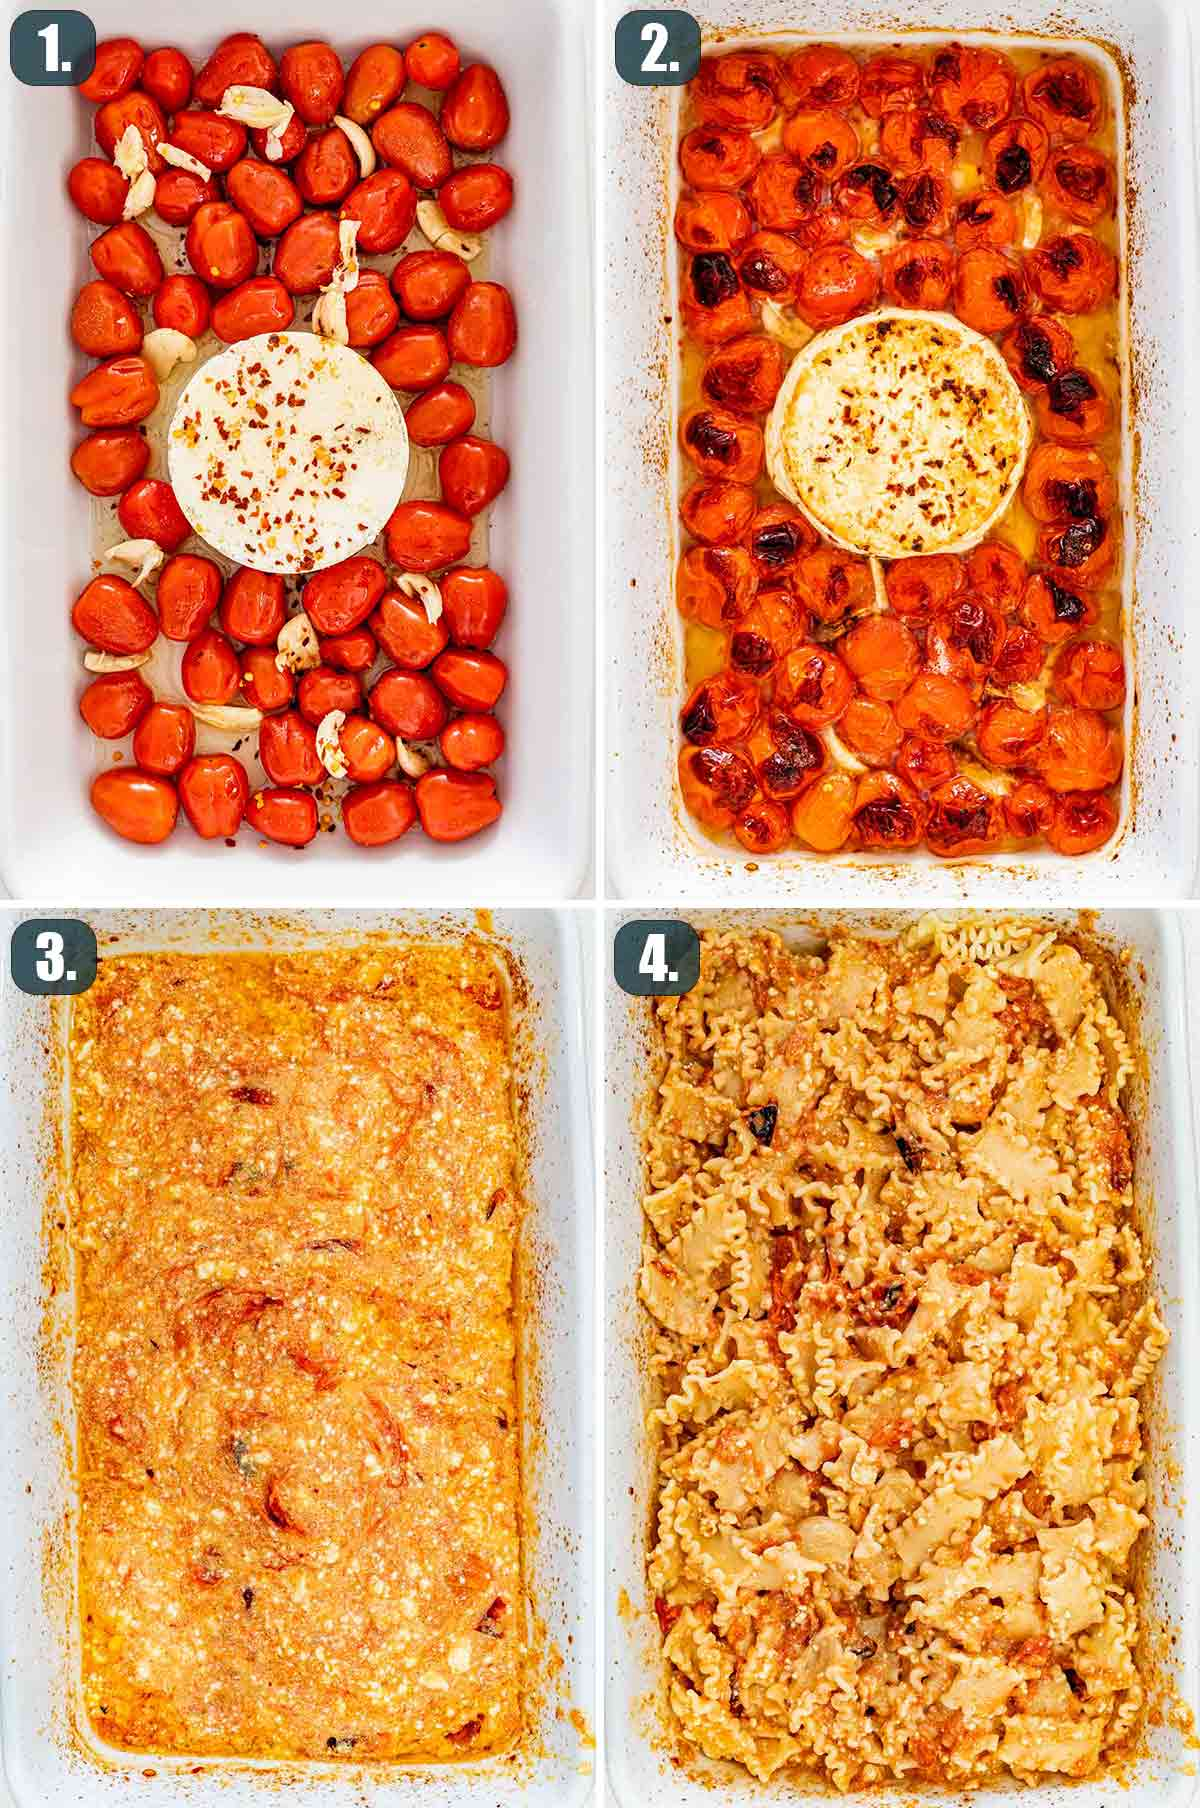 detailed process shots showing how to make baked feta pasta.